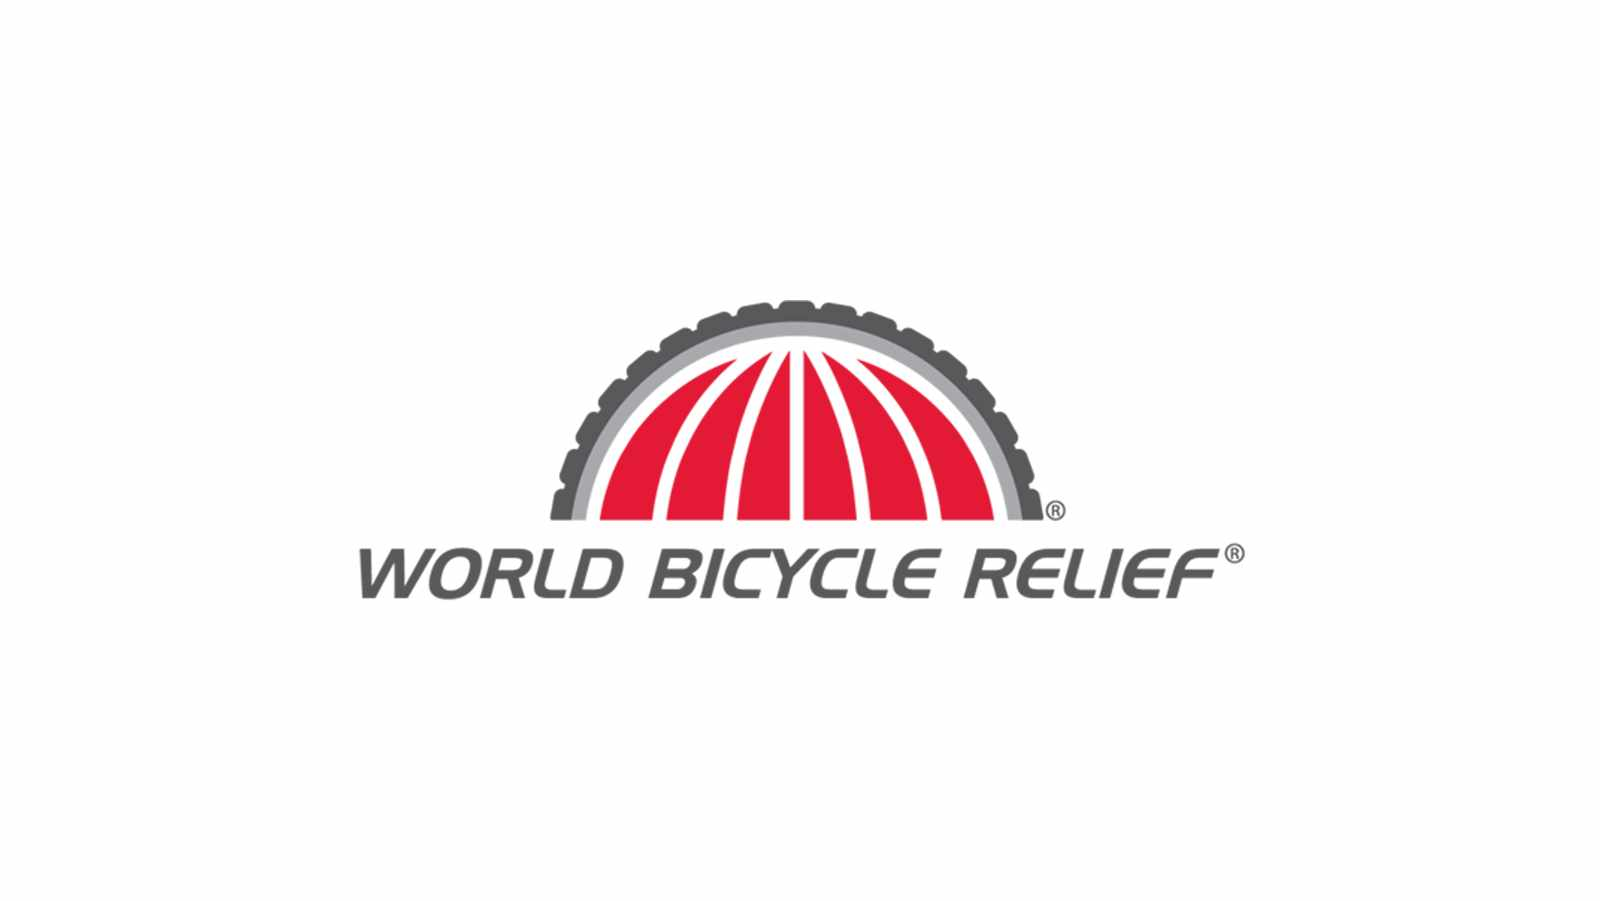 The work of World Bicycle Relief clearly shows the impact bikes can have around the globe